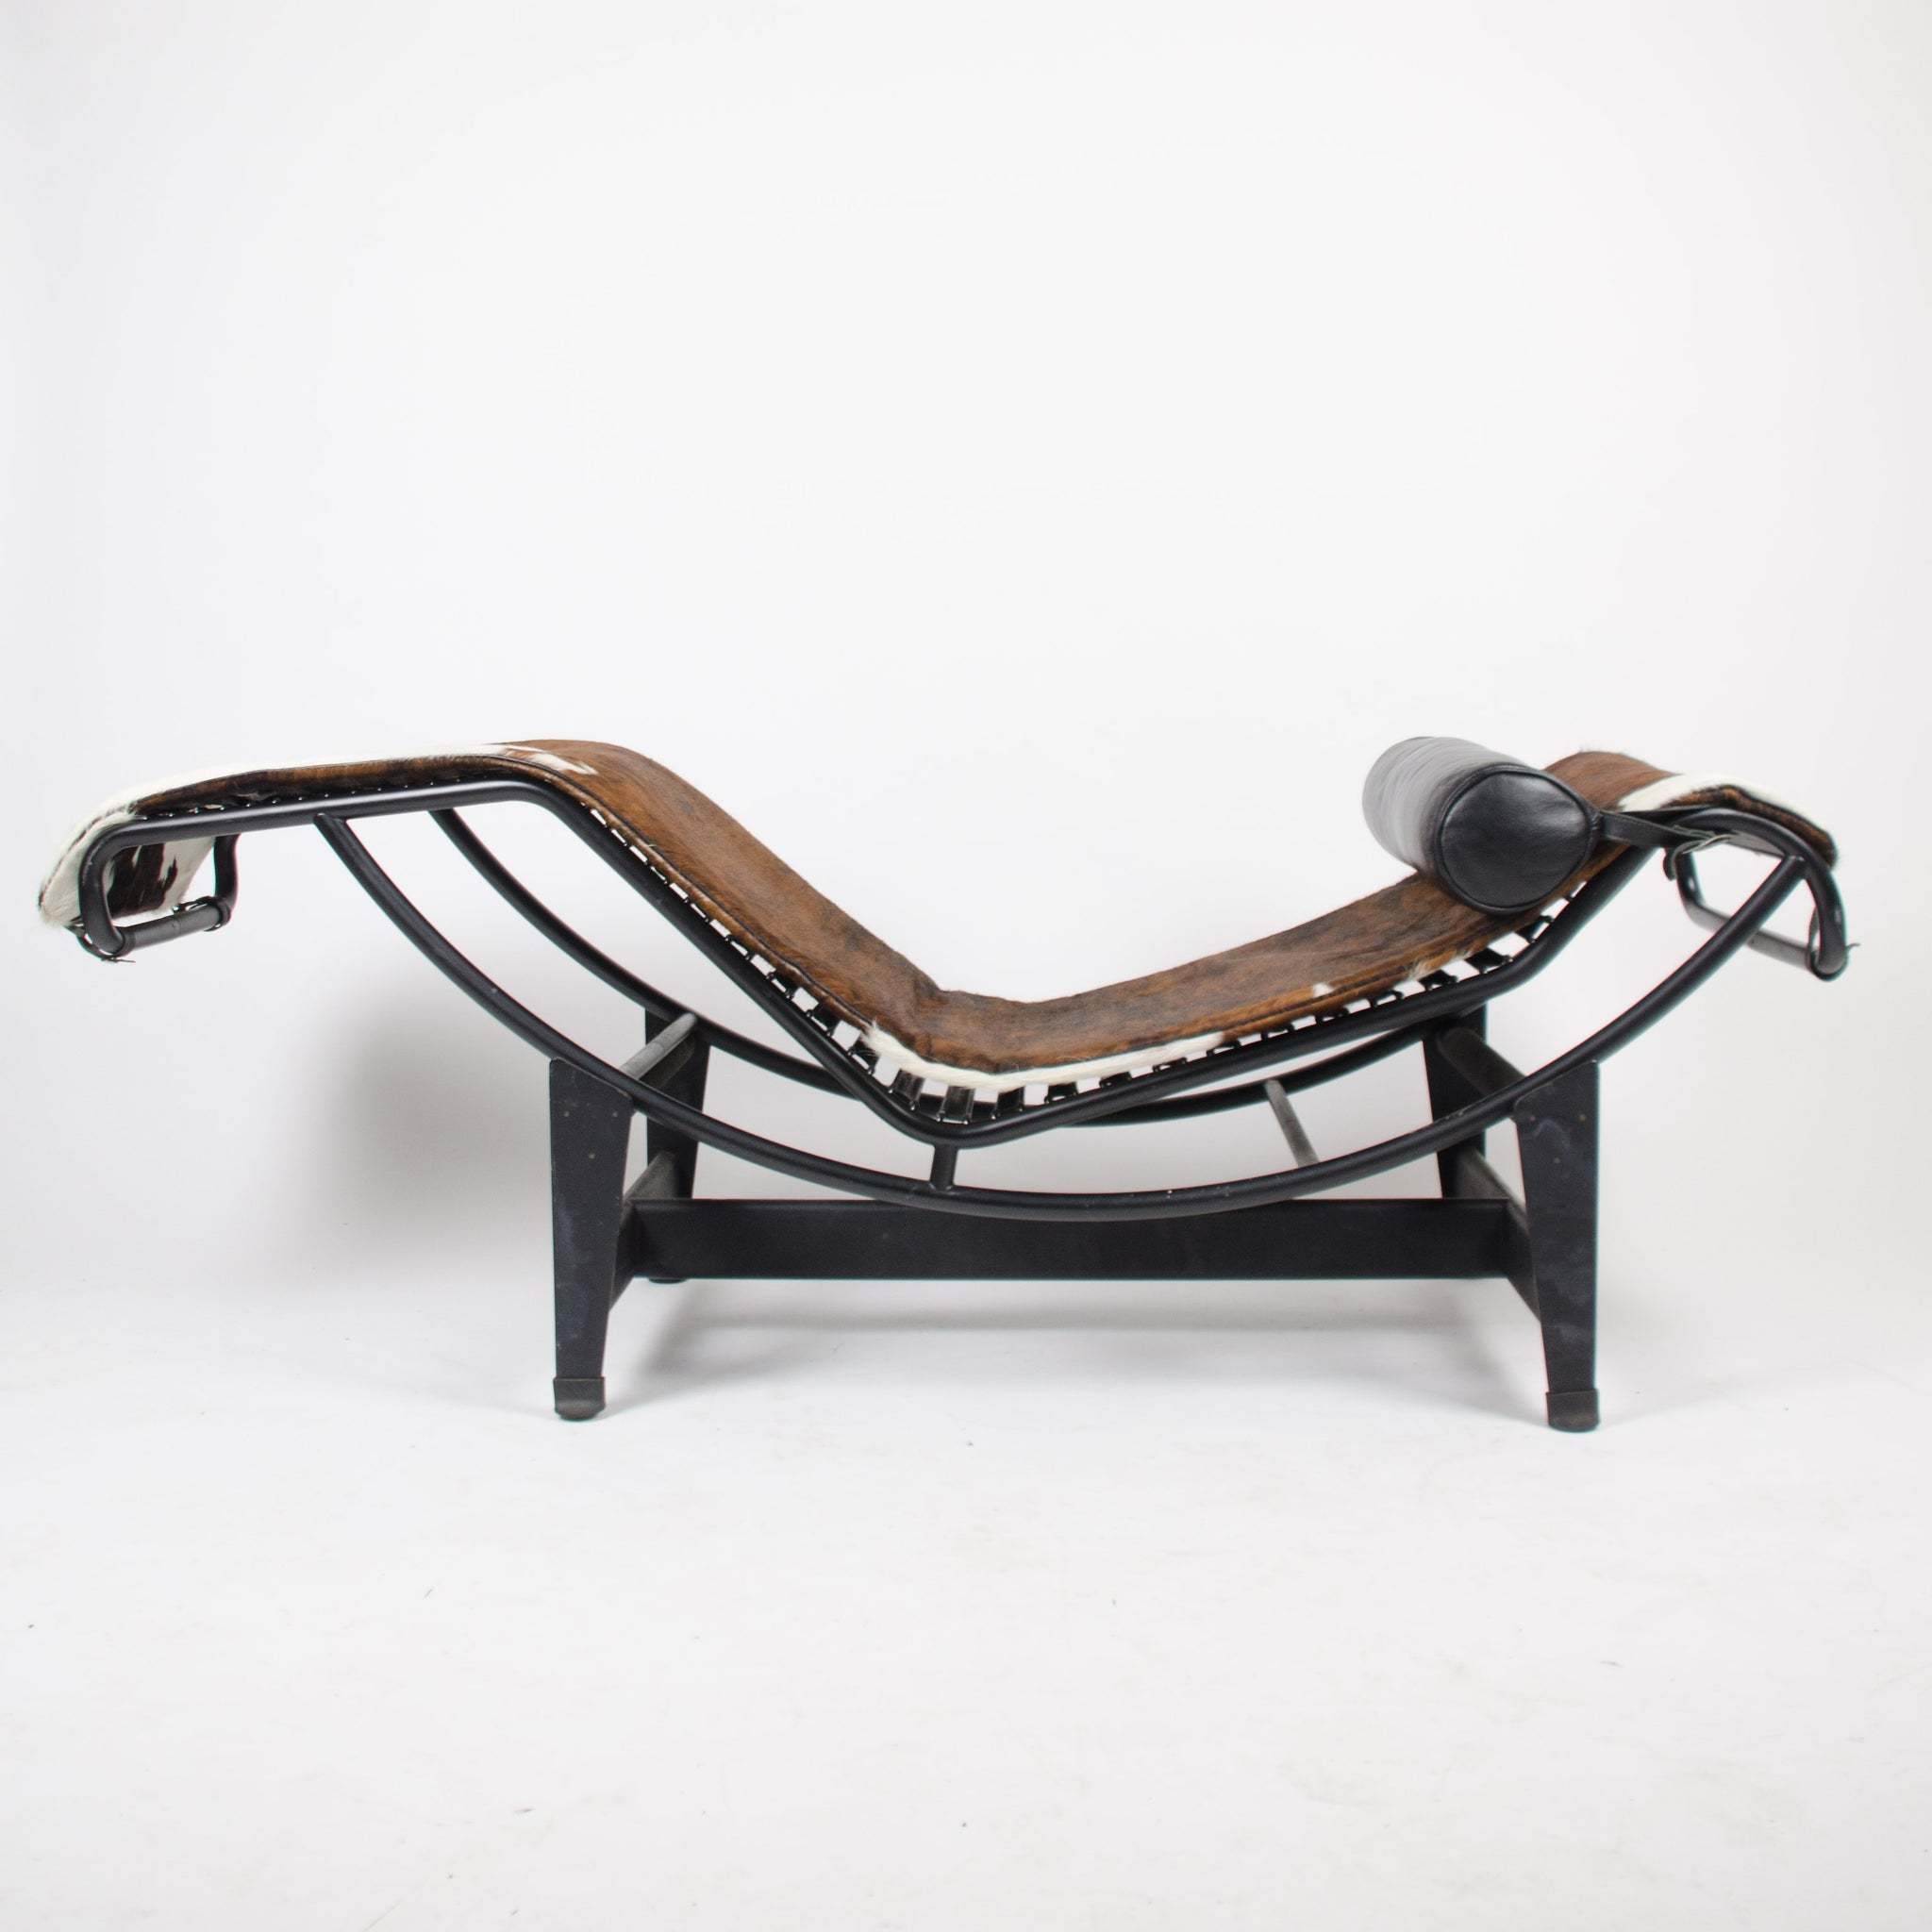 Le corbusier cassina lc4 chaise lounge chair leather for Cassina chaise lounge